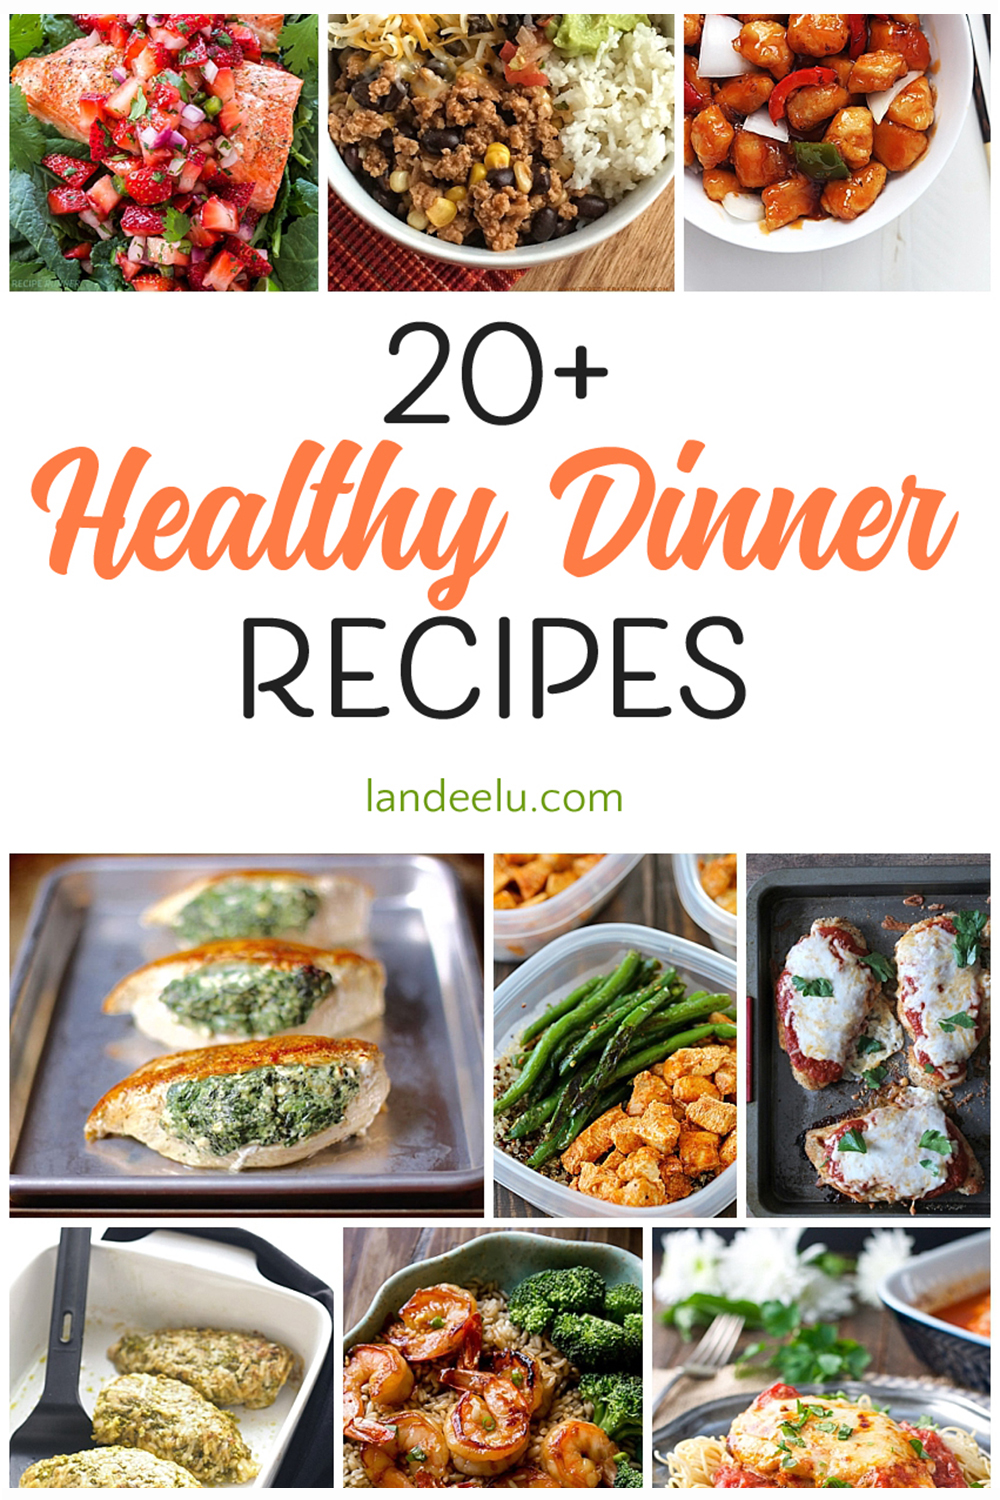 Over 20 healthy dinner recipes to try ASAP! Some family favorites lightened up and some packed with nutrients... all delicious! #healthydinners #healthyrecipes #familydinners #healthyfamilydinners